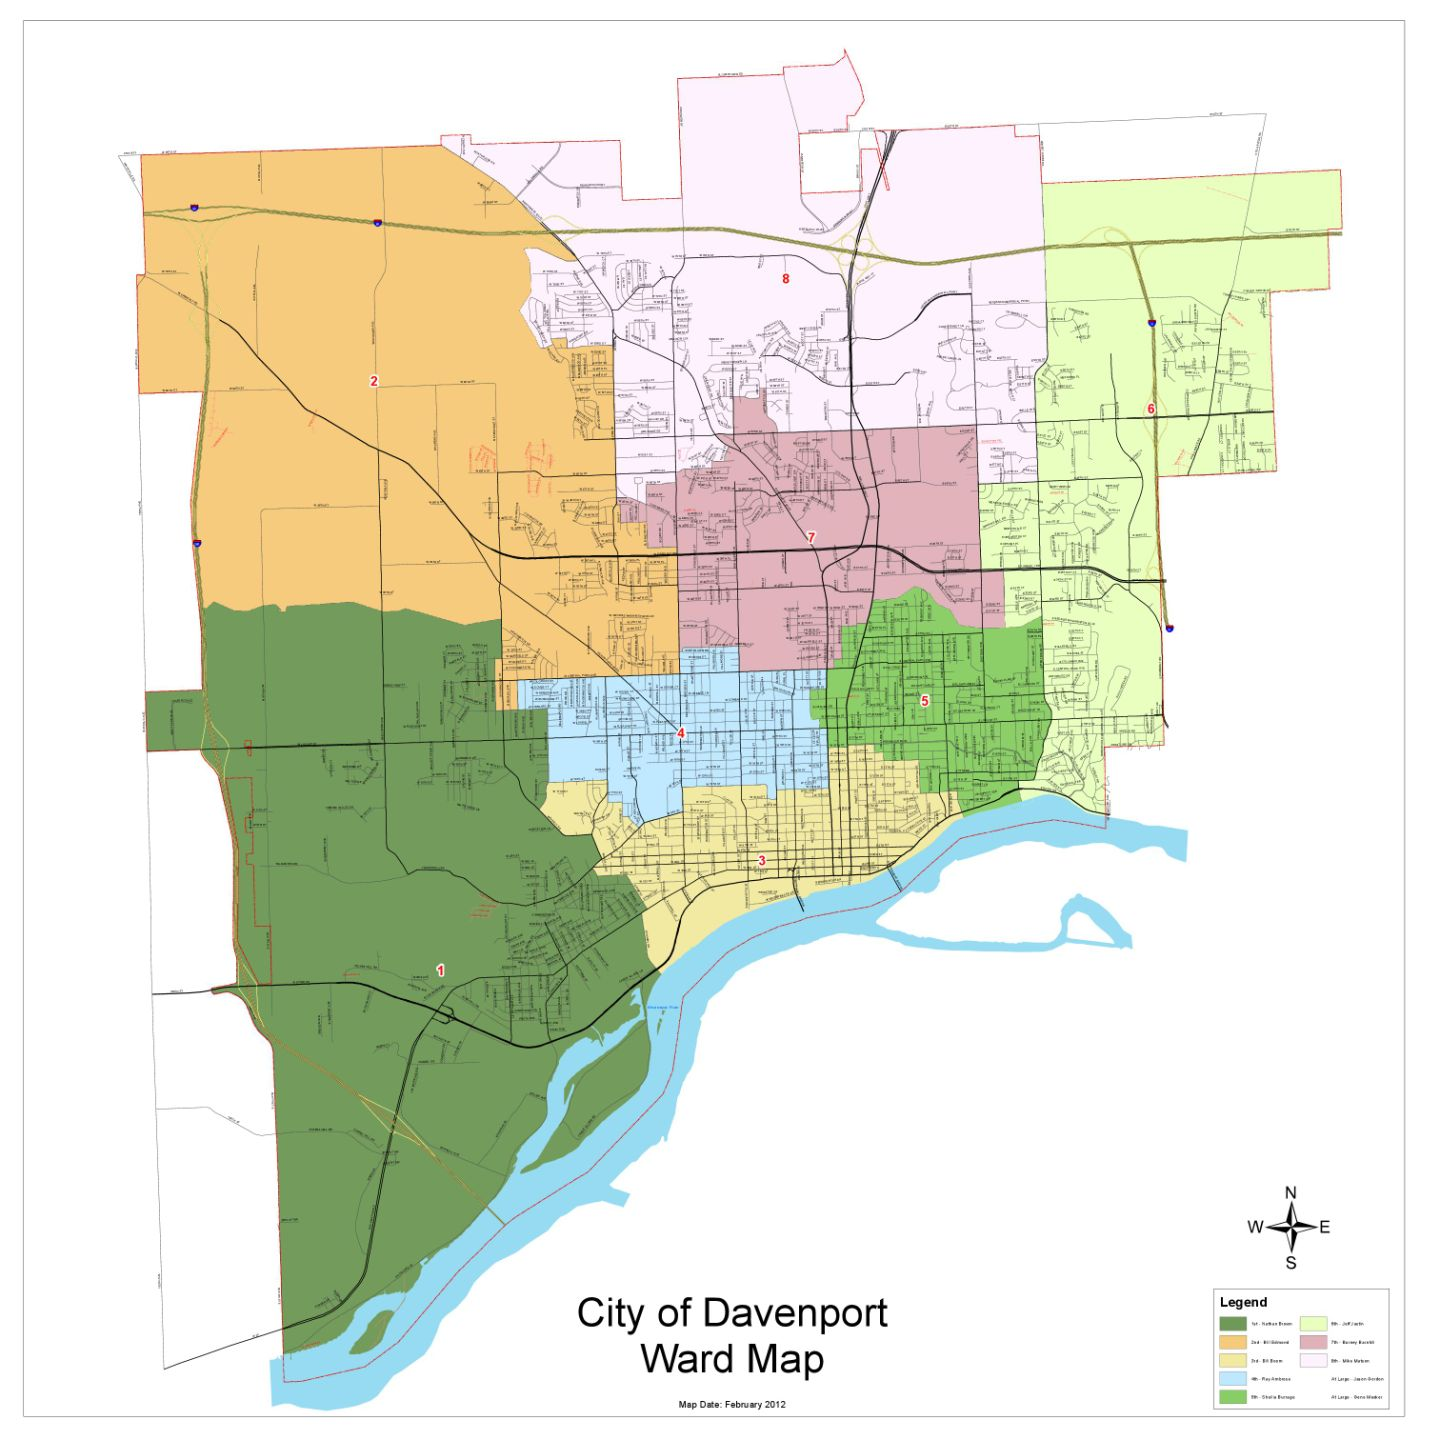 Davenport Wards map qctimescom